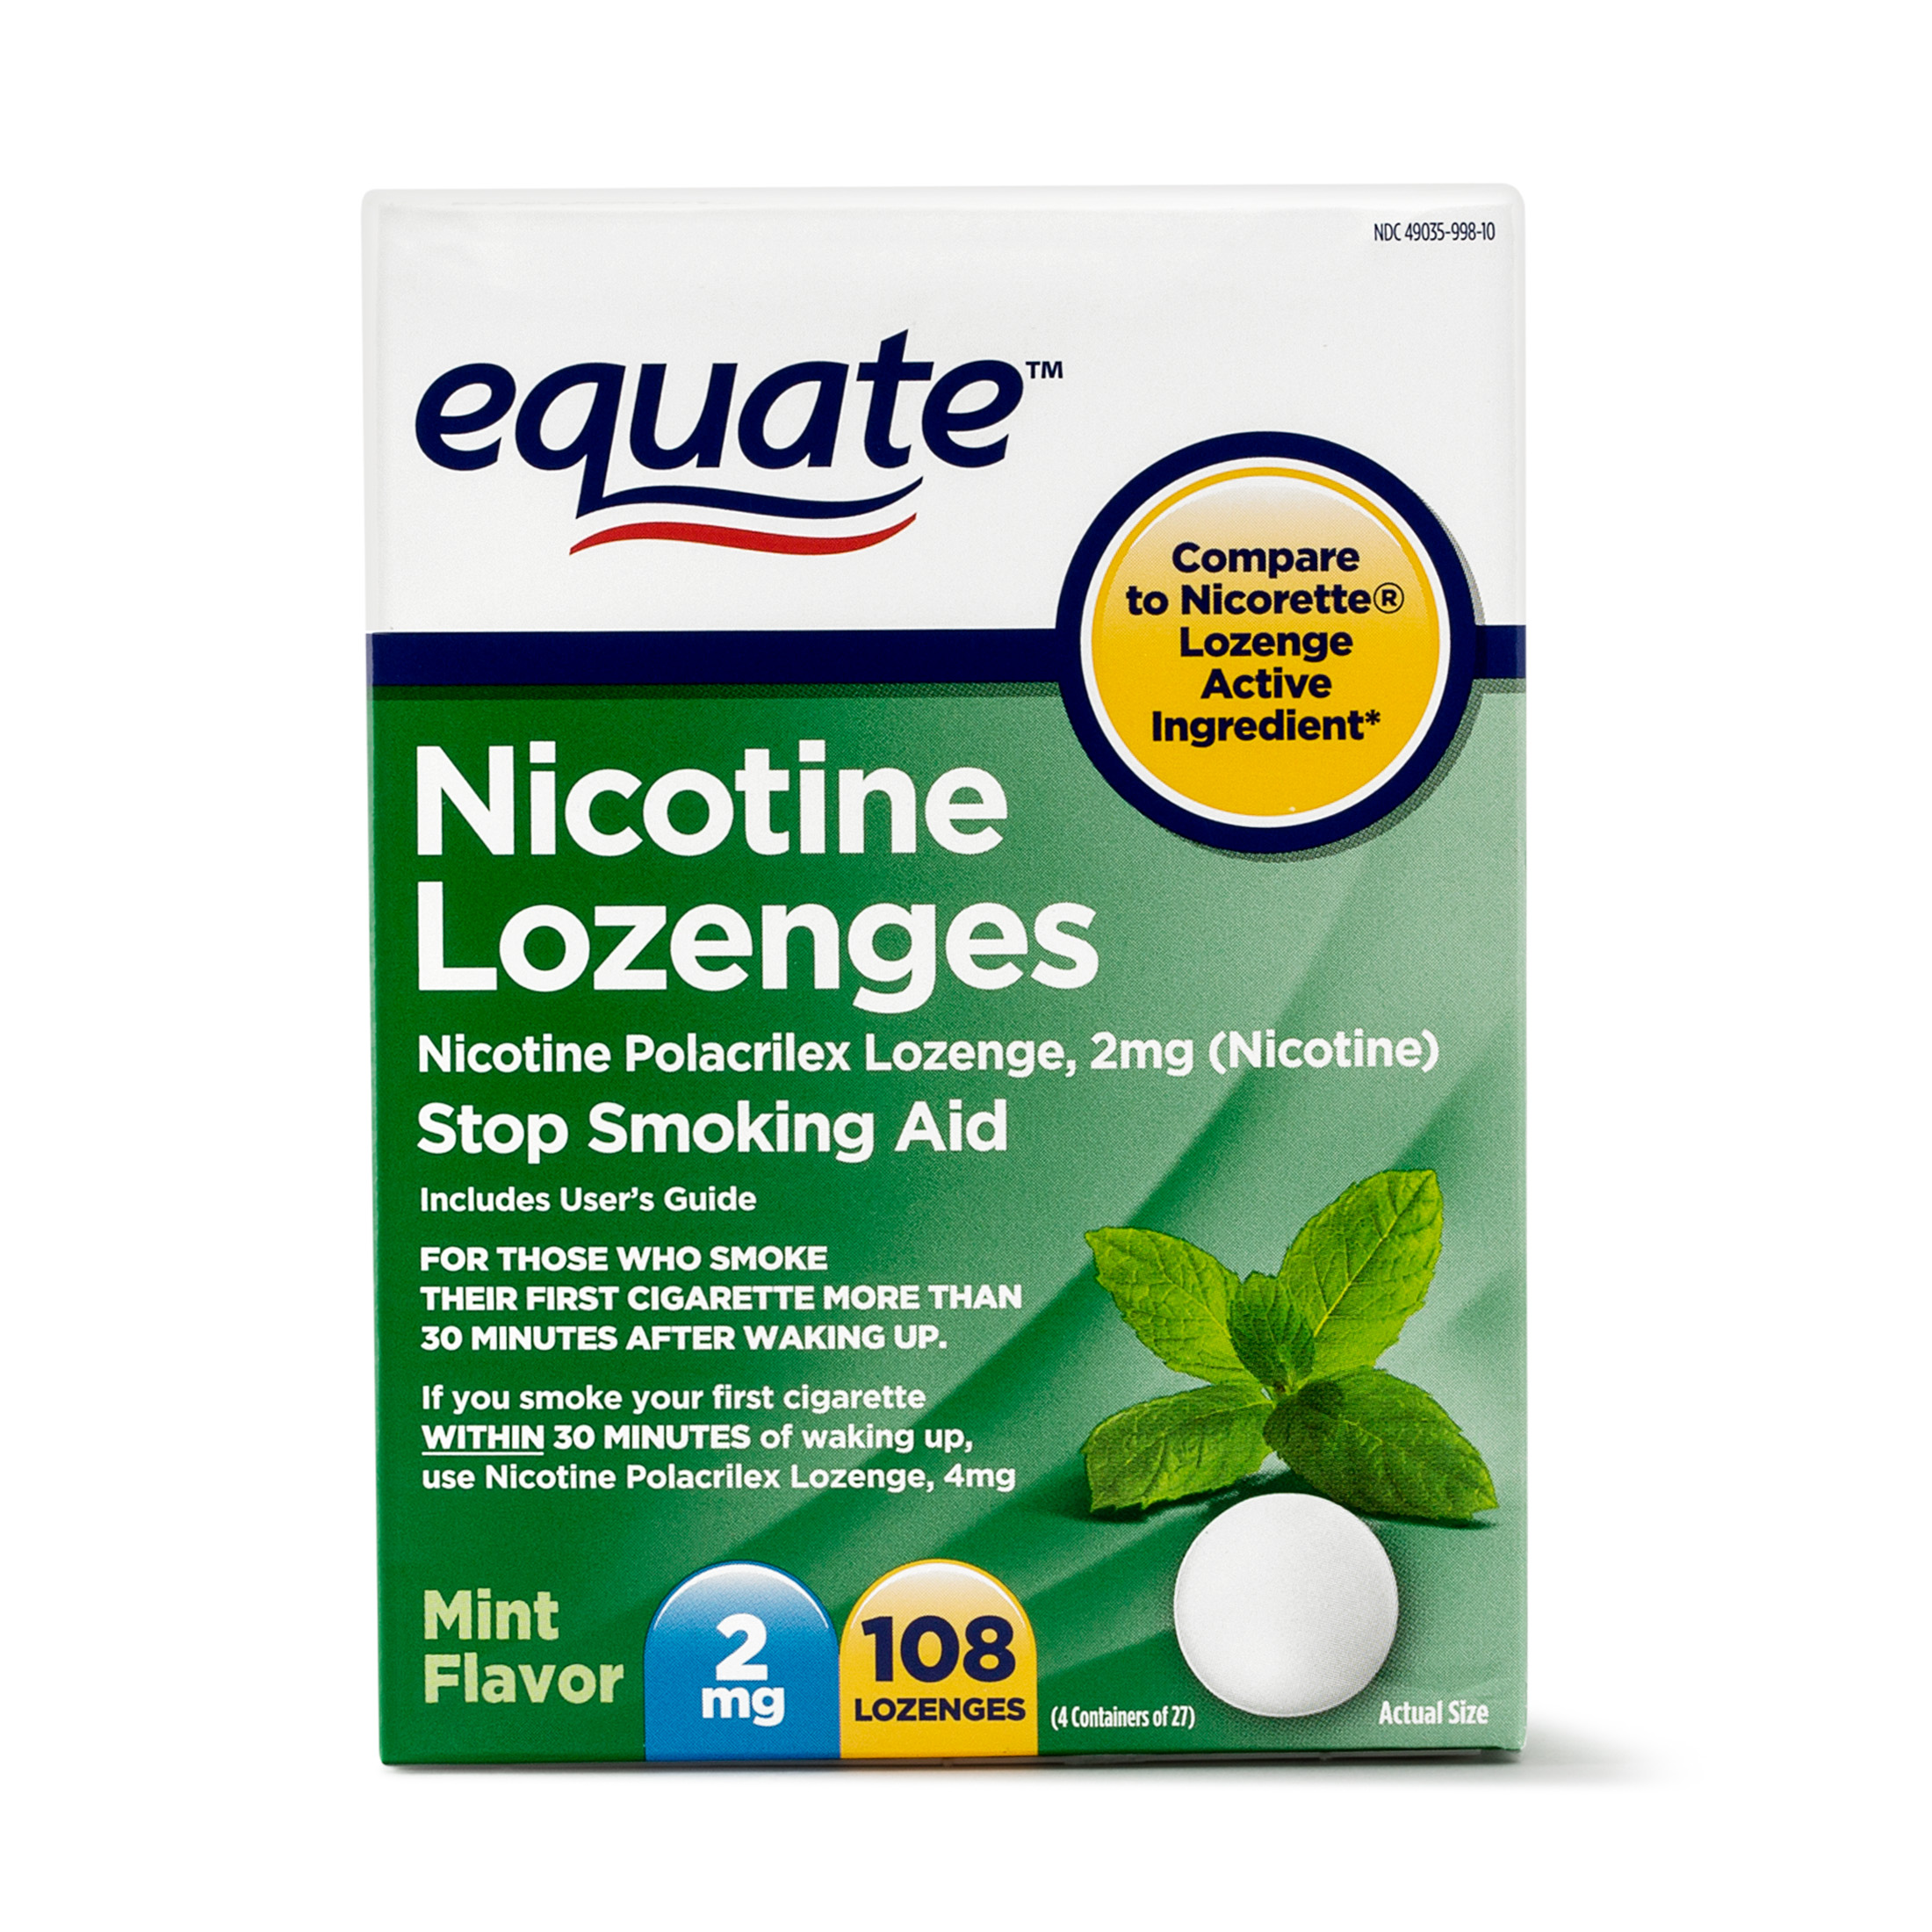 Equate Nicotine Lozenges Stop Smoking Aid Mint Flavor, 2 mg, 108 Ct